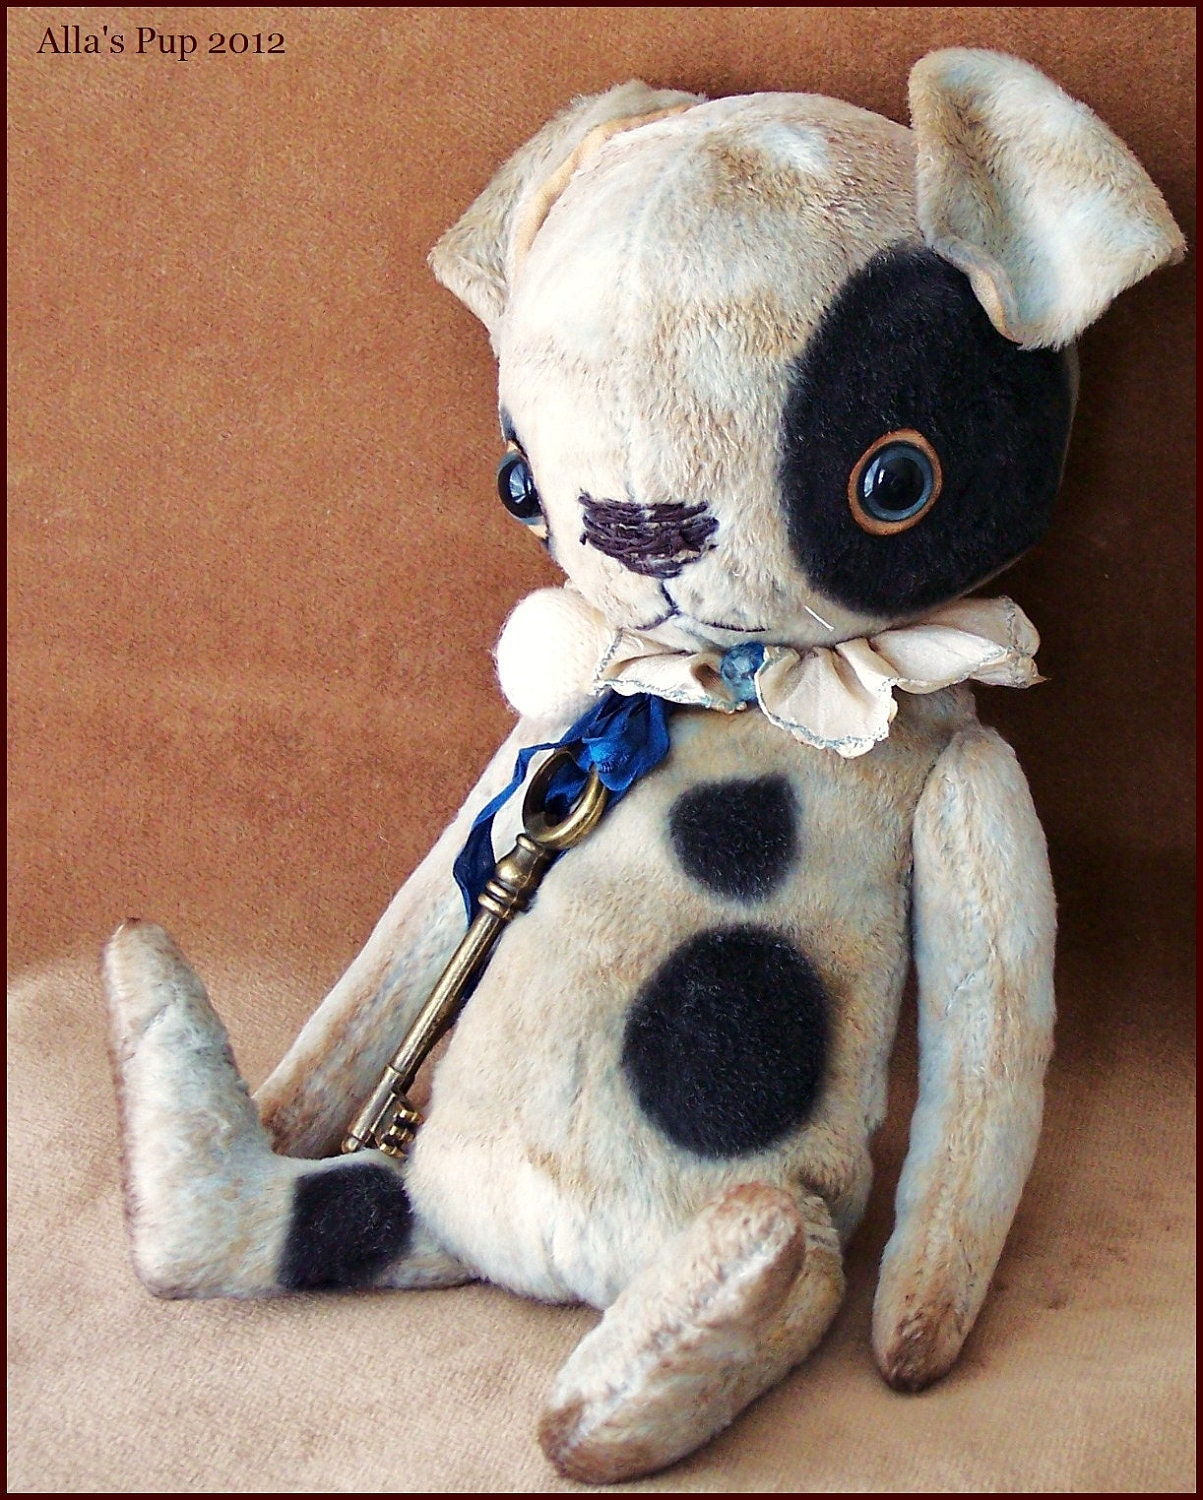 "By Alla Bears original 10"" artist OOAK Vintage Old Prim Puppy Dog art toy doll"